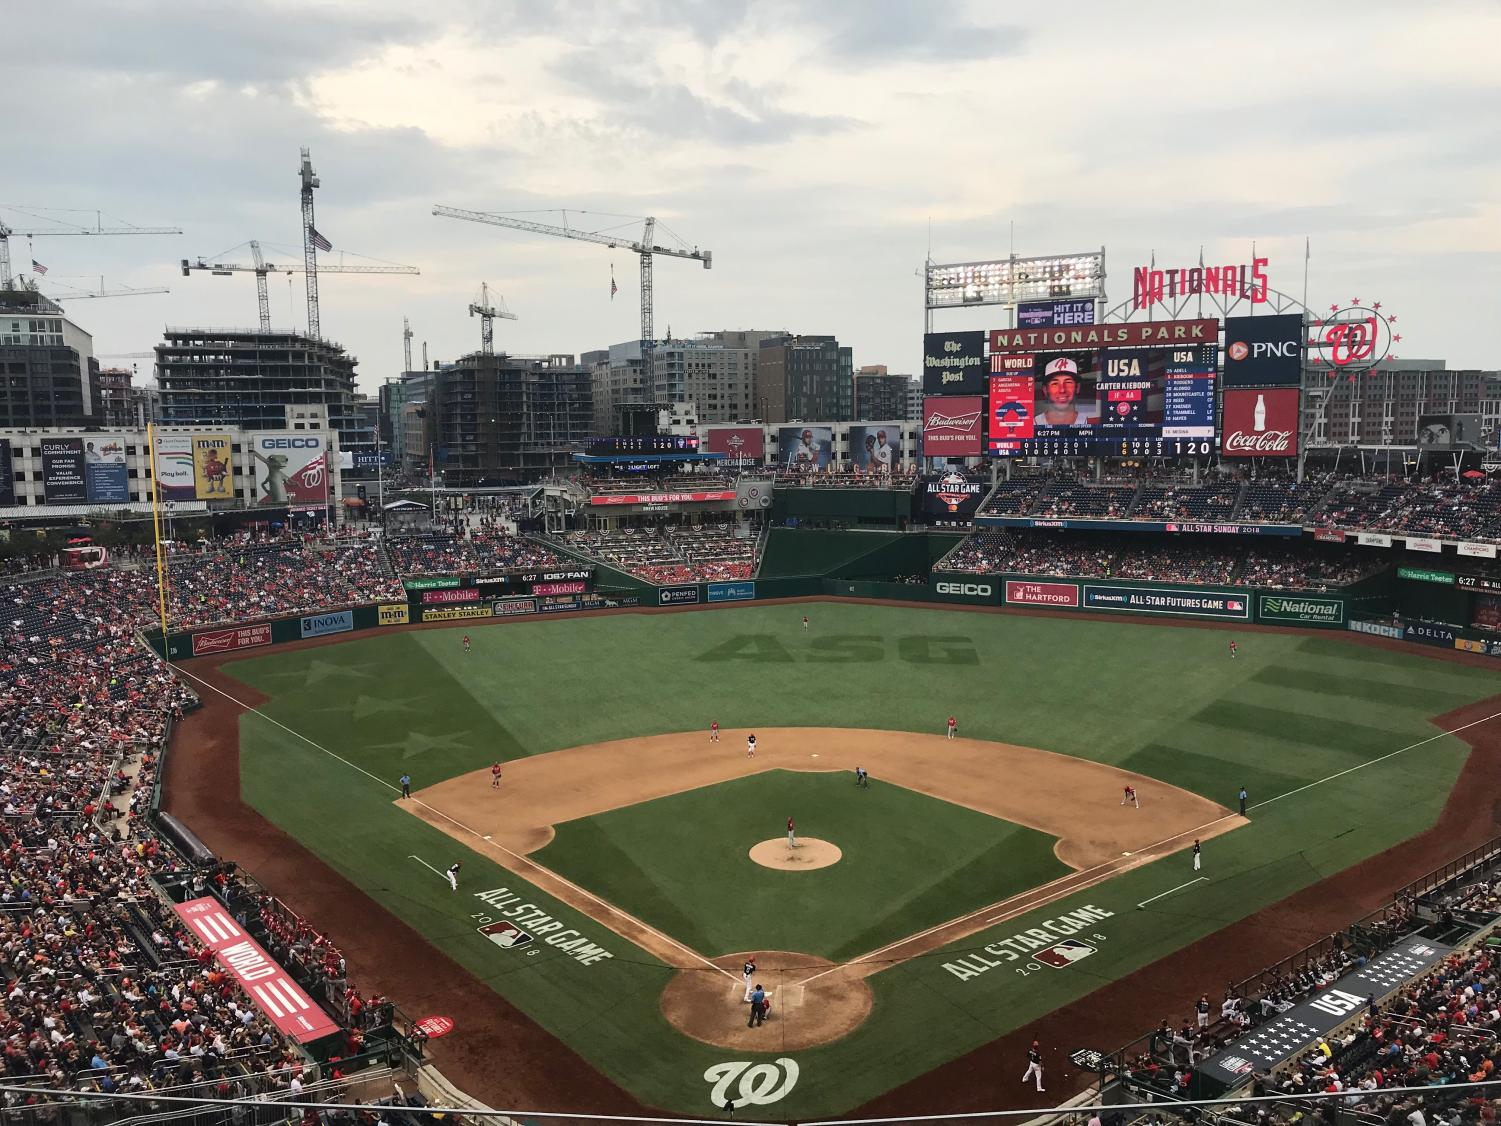 Despite having decent players like Bryce Harper and Max Scherzer, and the temporary fame of hosting the 2018 All-Star Game, the Nationals didn't make the playoffs. The Nationals will have a long winter to think about what they did wrong and how they can improve for 2019.